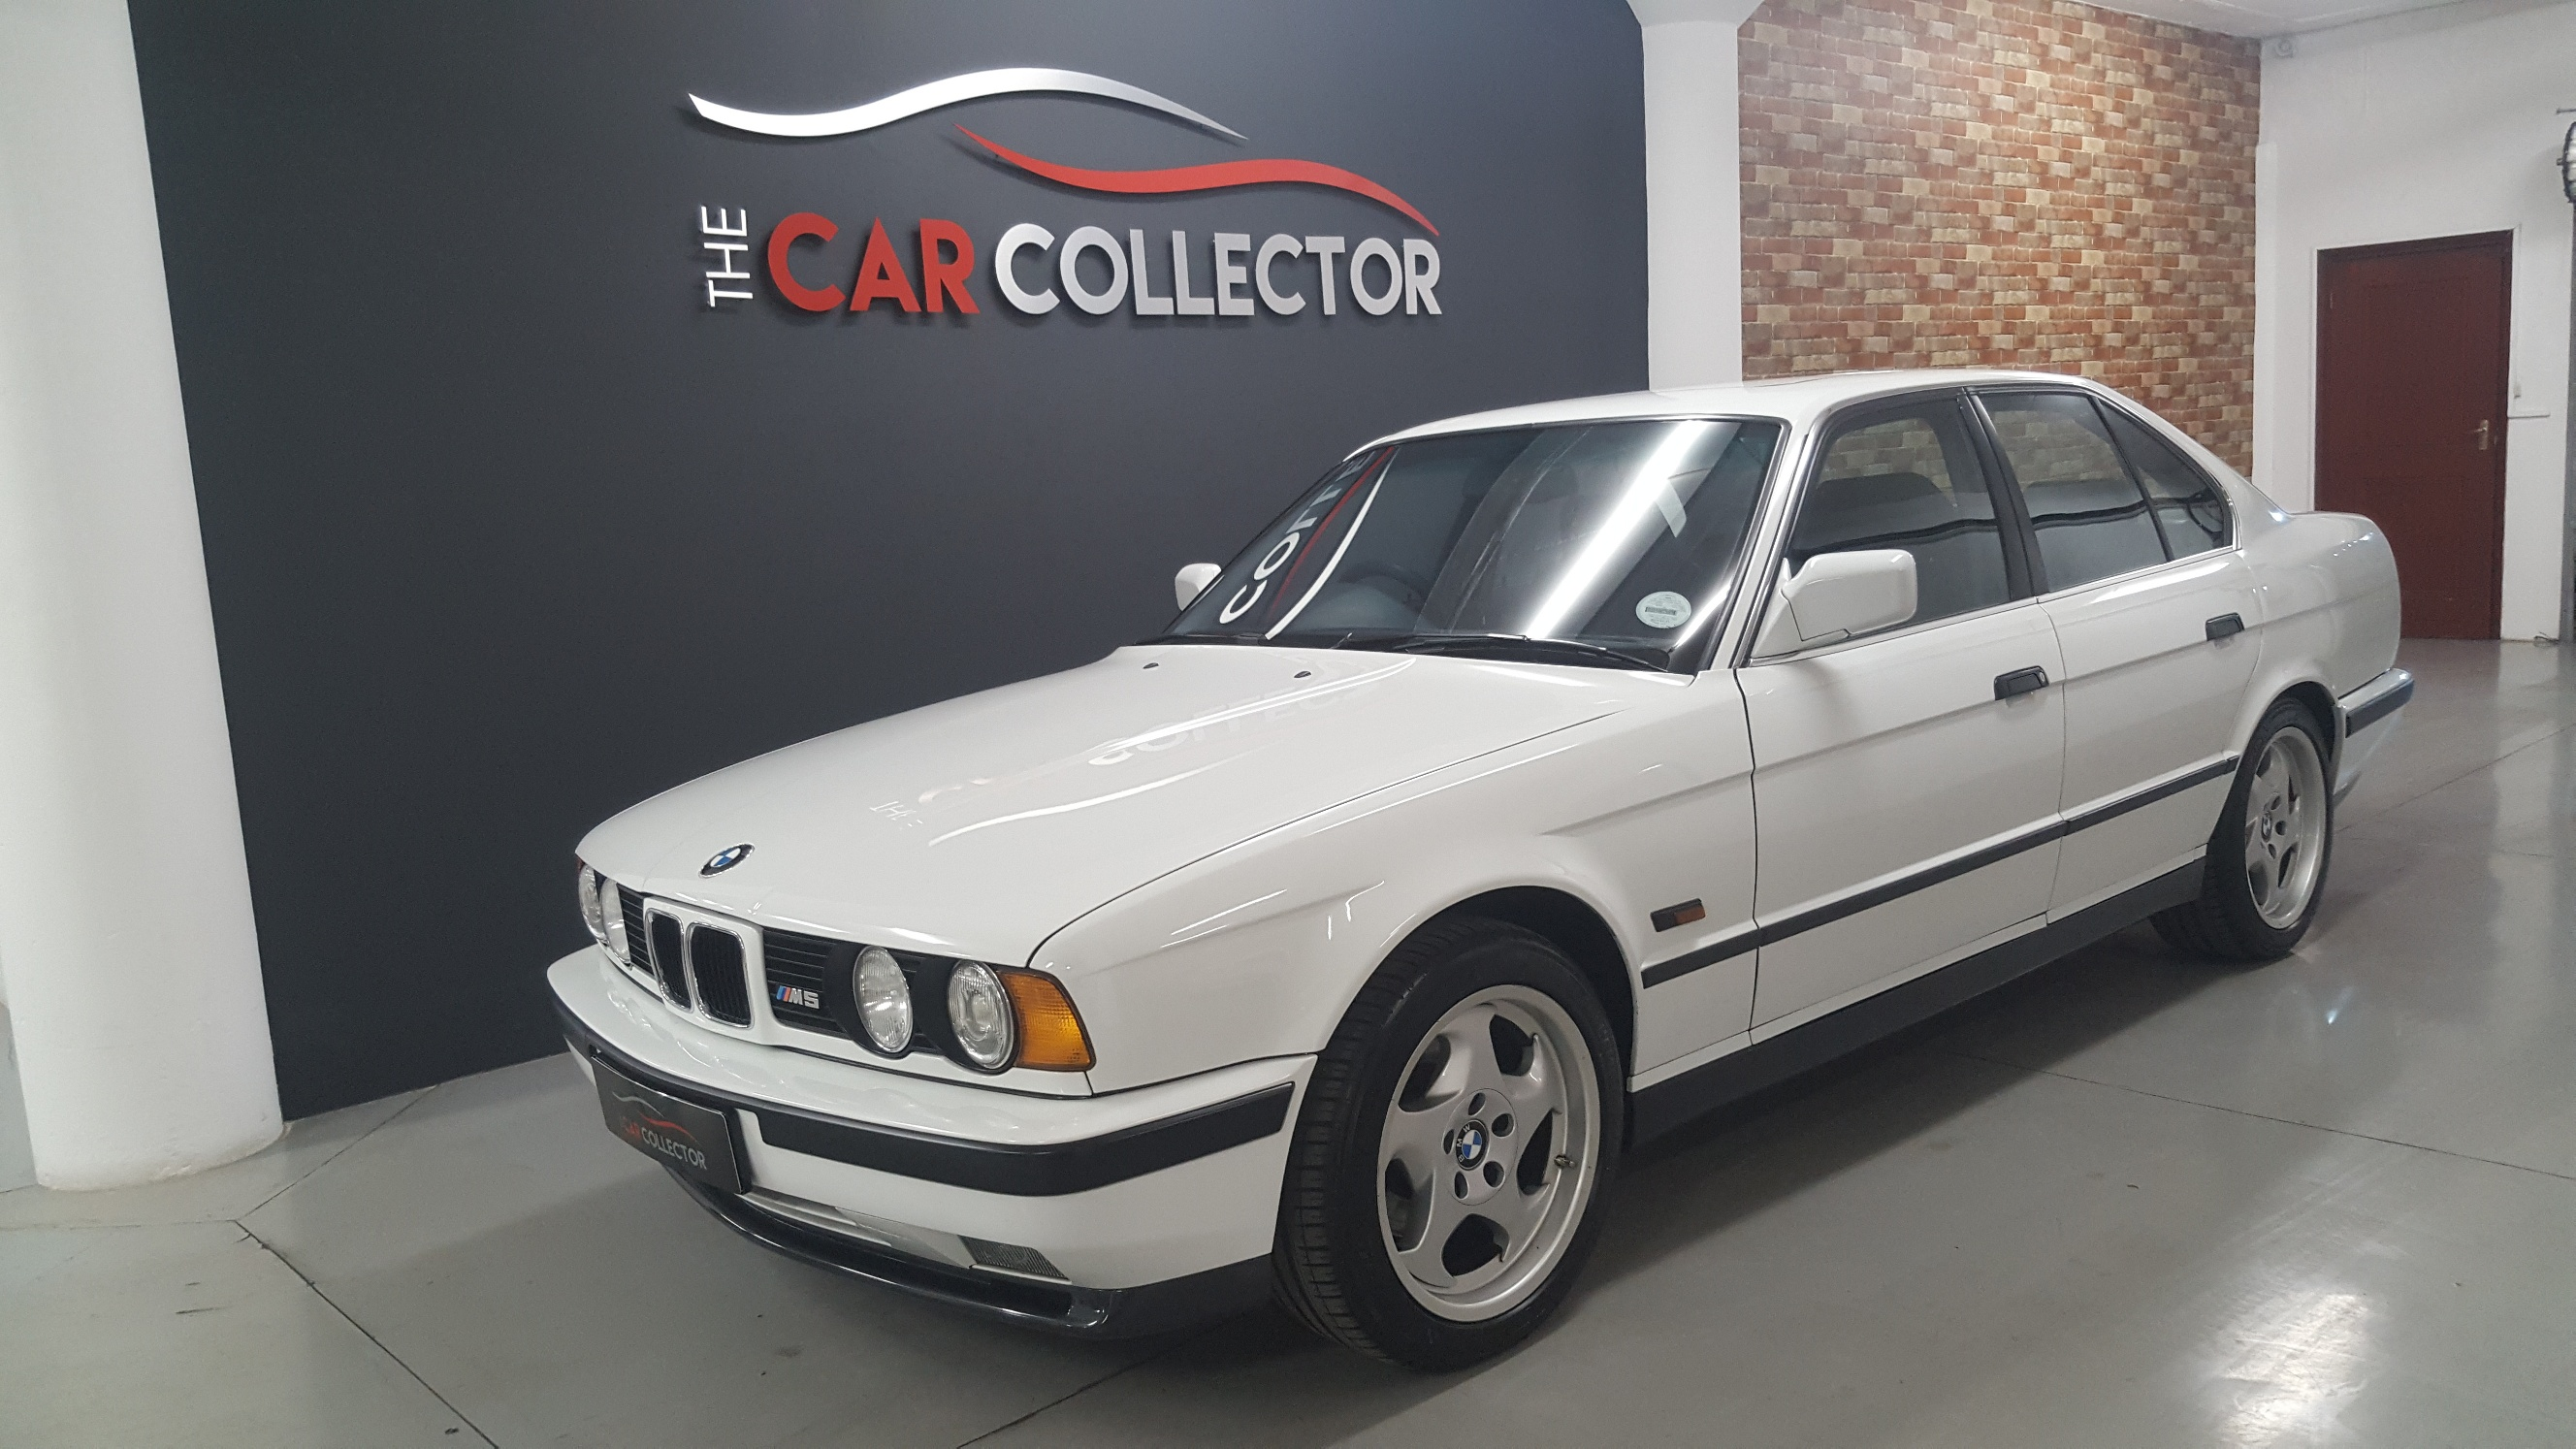 E34 M5 For Sale >> Bmw E34 M5 The Car Collector